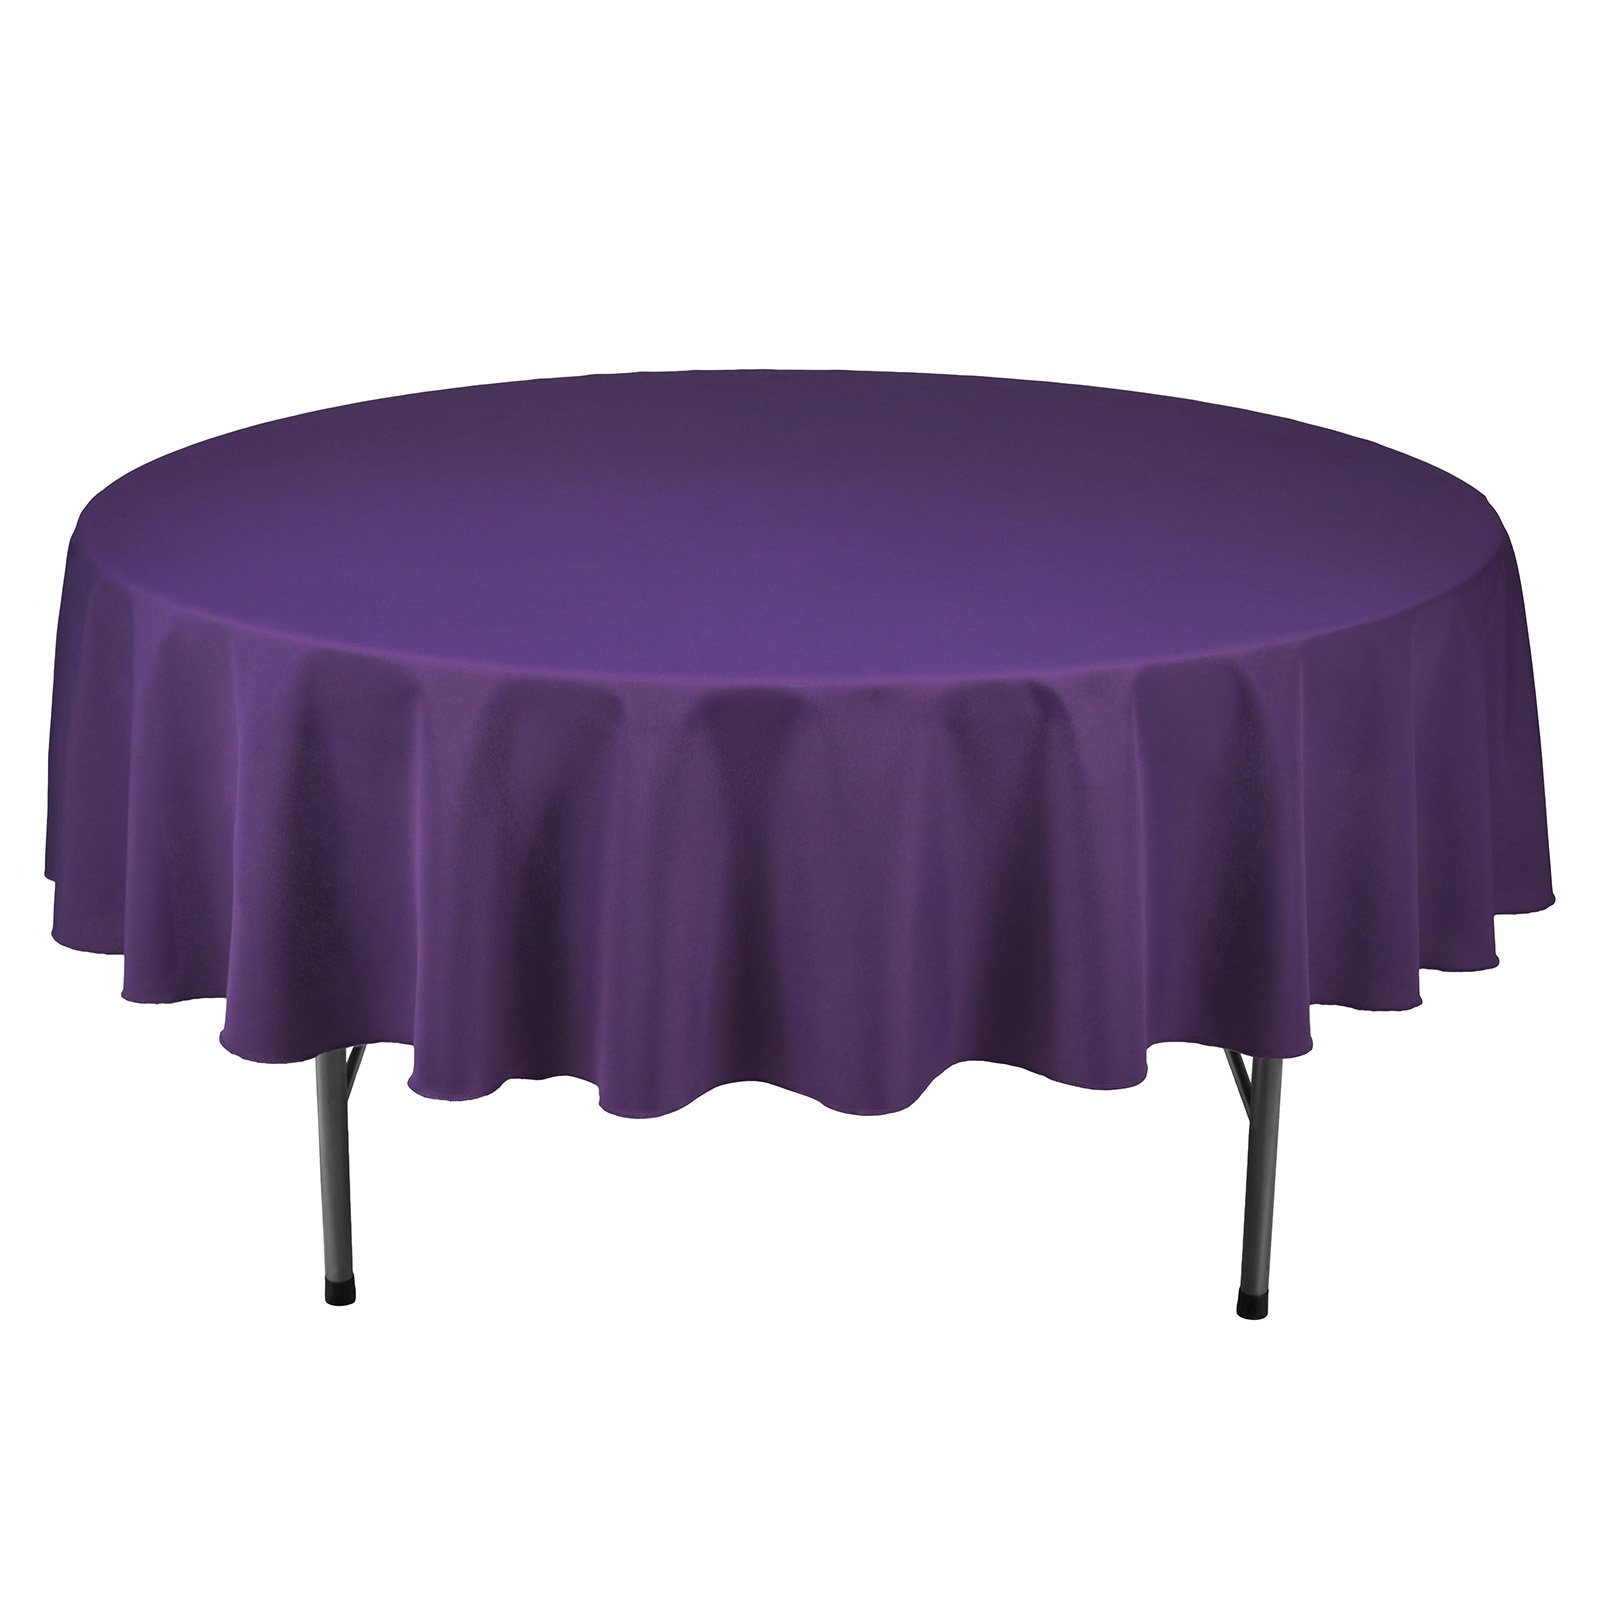 Remedios Round Tablecloth Solid Color Polyester Table Cloth for Bridal Shower Wedding Table – Wrinkle Free Dinner Tablecloth for Restaurant Party Banquet (Purple, 90 inch)